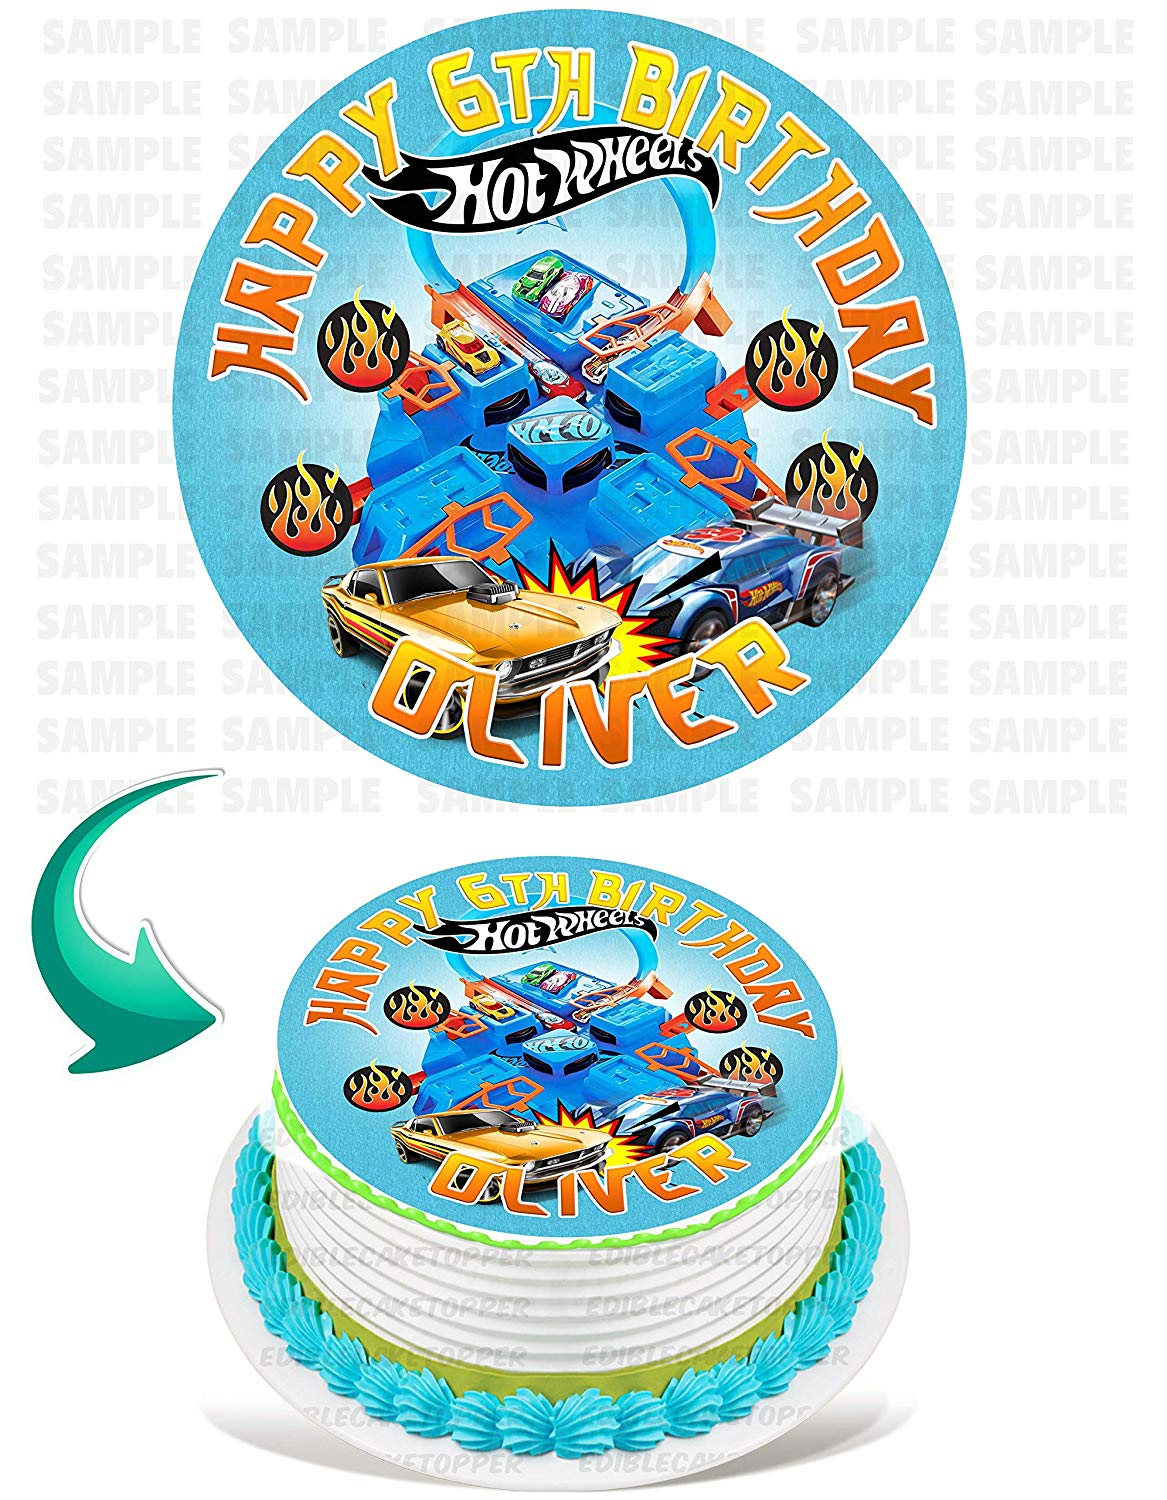 Hot Wheels Cake Walmart : wheels, walmart, Wheels, Edible, Image, Topper, Personalized, Birthday, Party, Inches, Round, Walmart.com